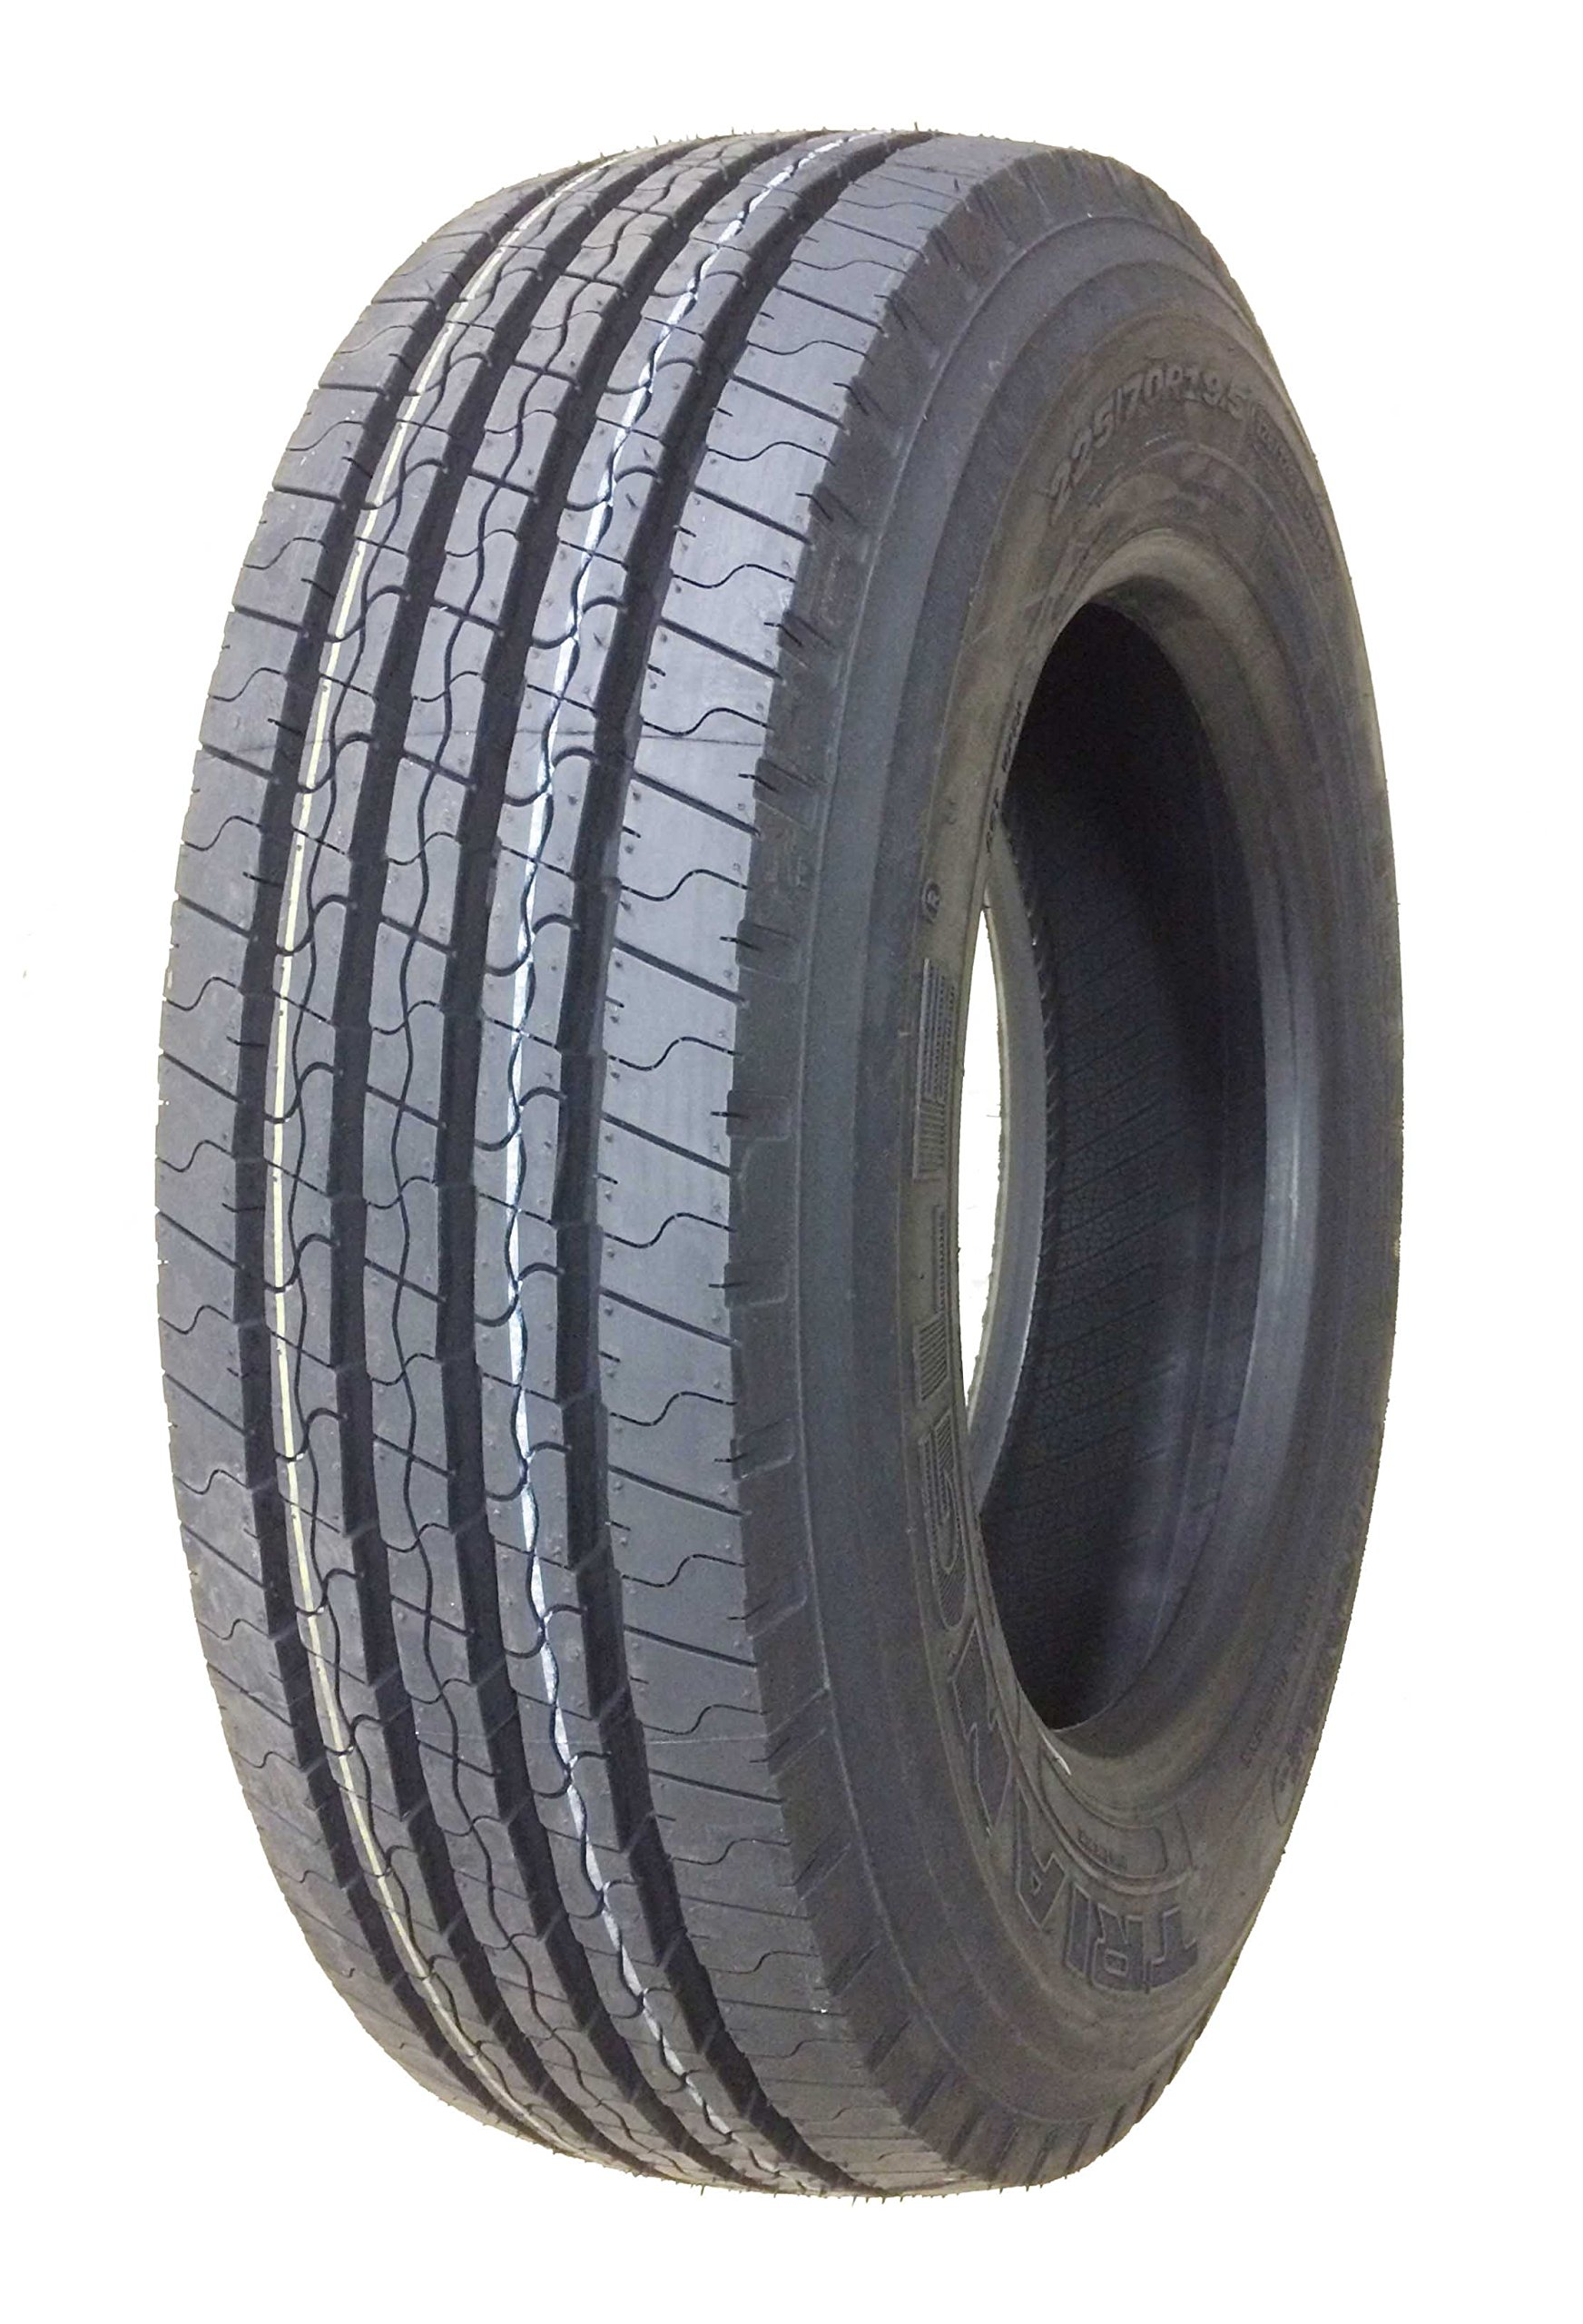 New TRIANGLE 225/70R19.5 14 Ply Rated All Position Truck/trailer Radial Tire - 11068